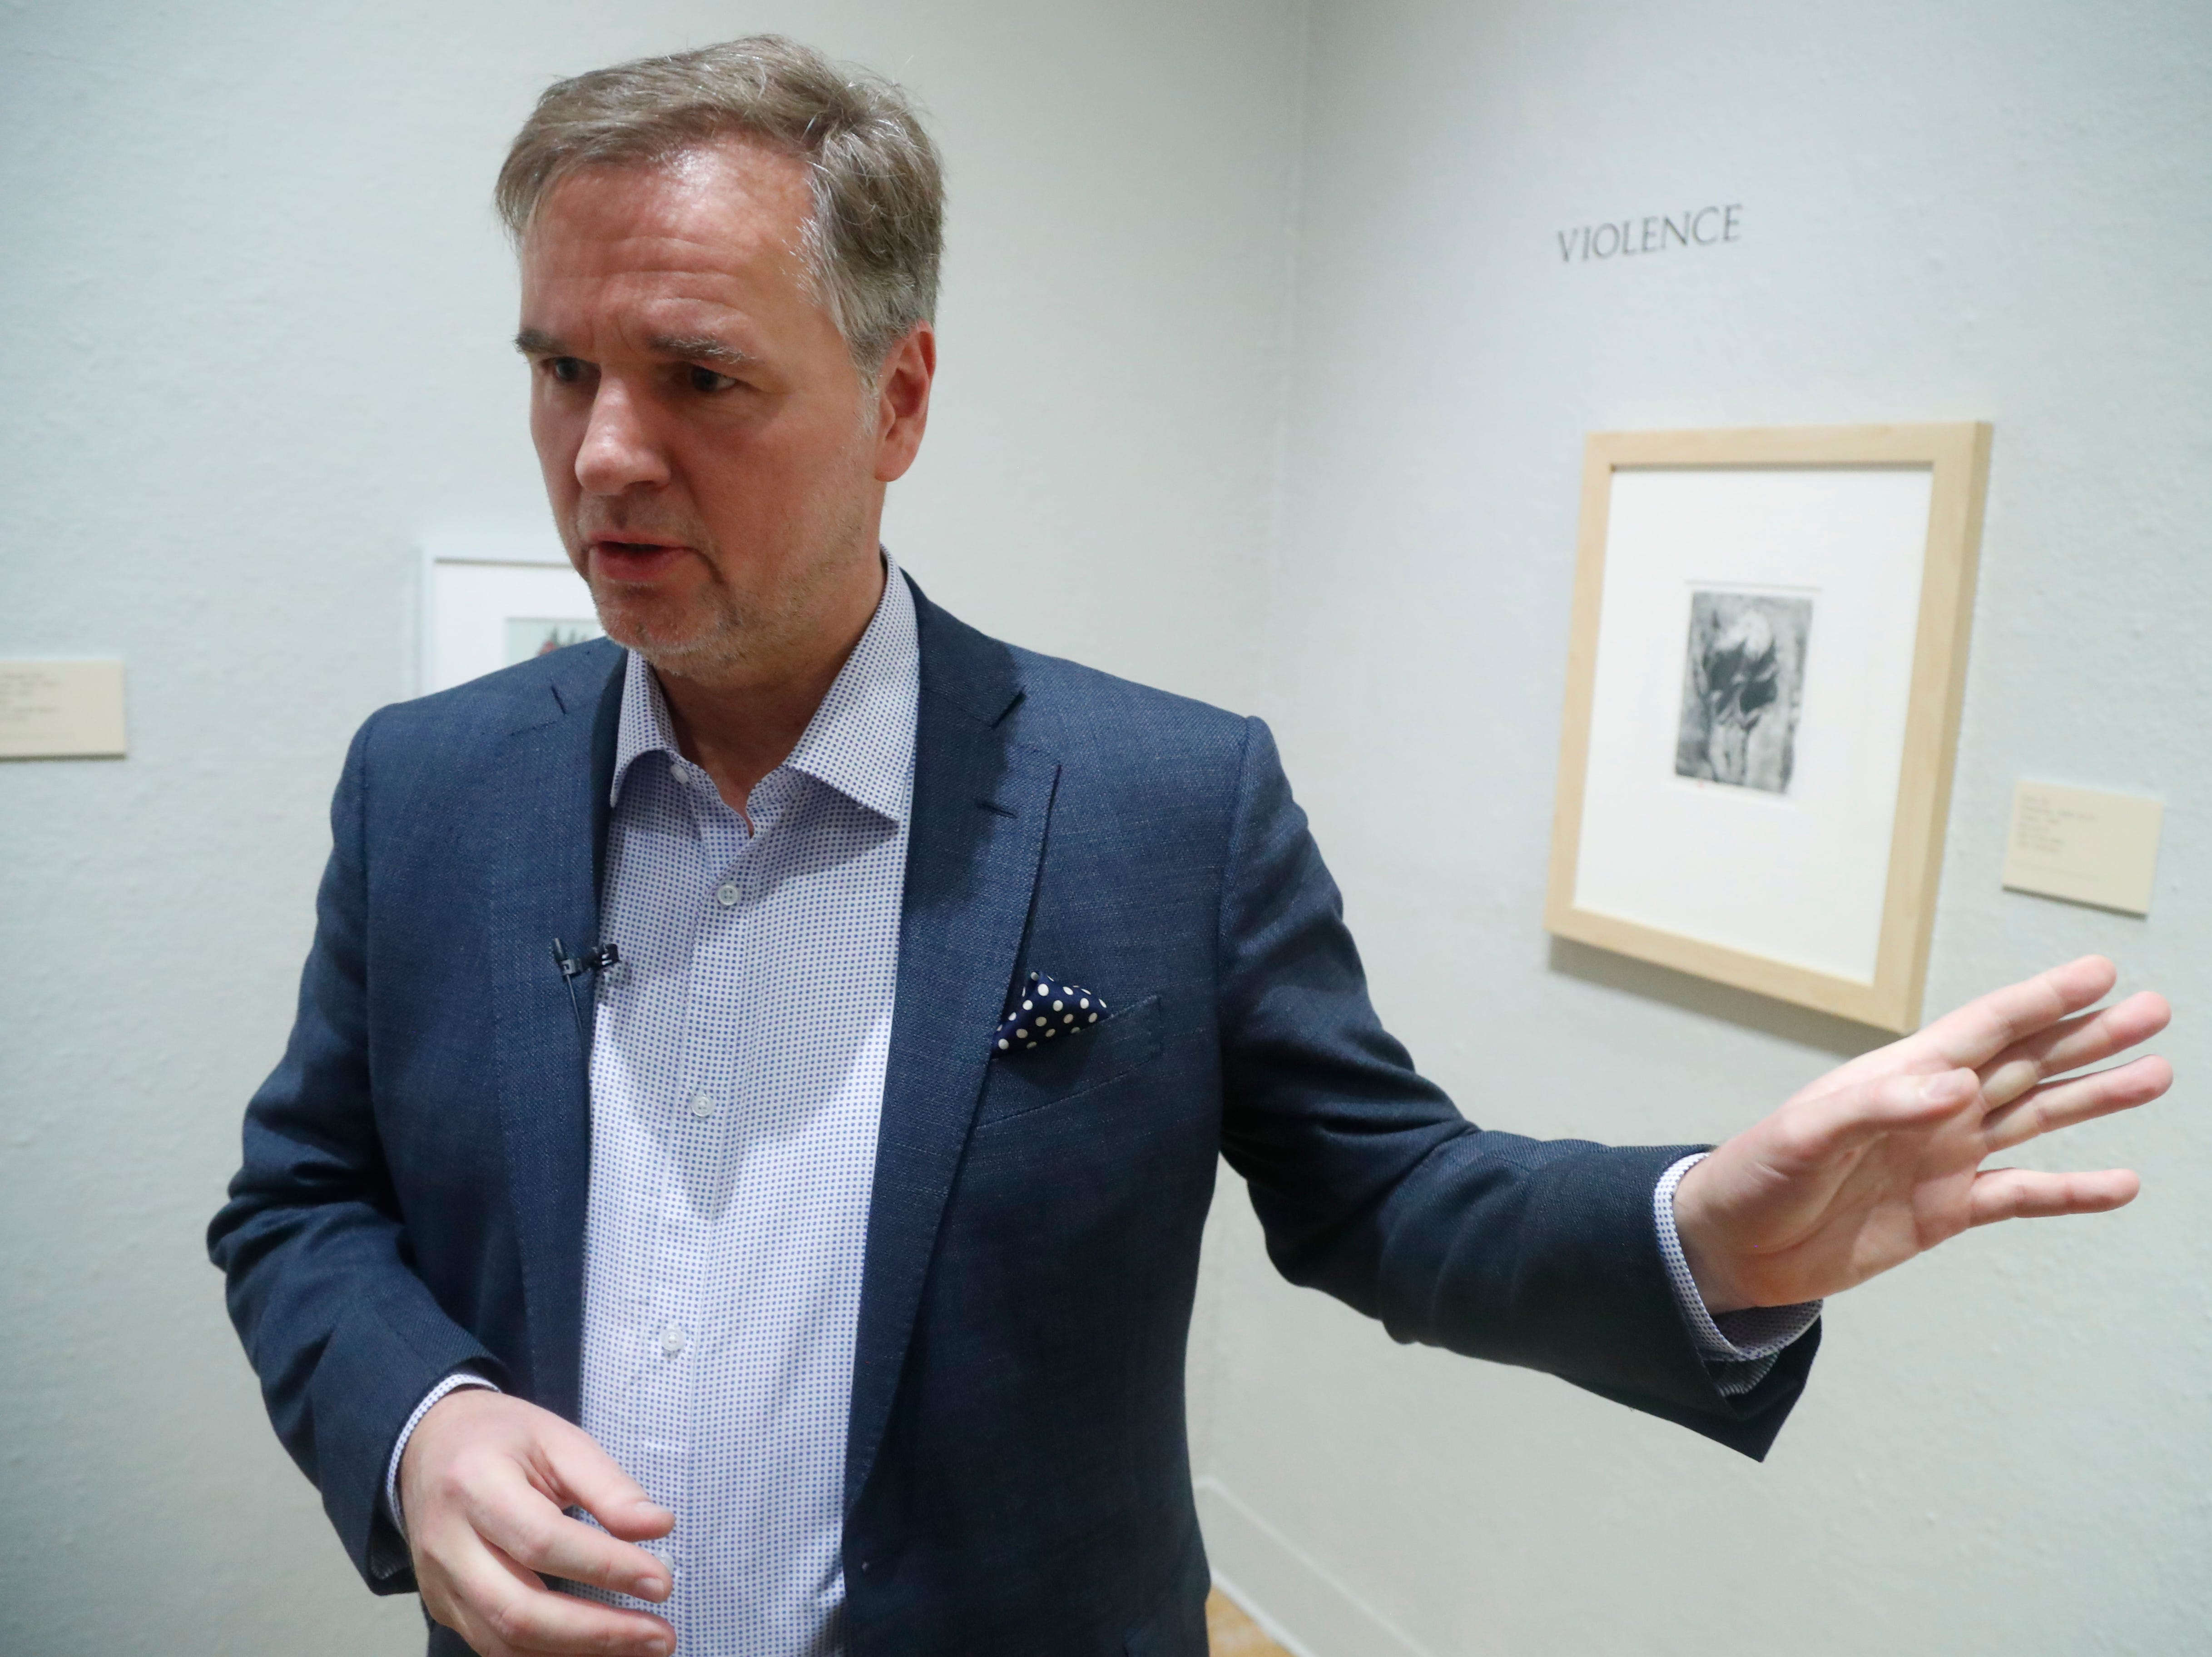 """Getty Museum's Ulrich Birkmaier talks with people at the University of Arizona Museum of Art in Tucson on March 17, 2019. Birkmaier will work on restoring Willem de Kooning's """"Woman-Ochre,"""" a painting stolen in 1985 from the college."""